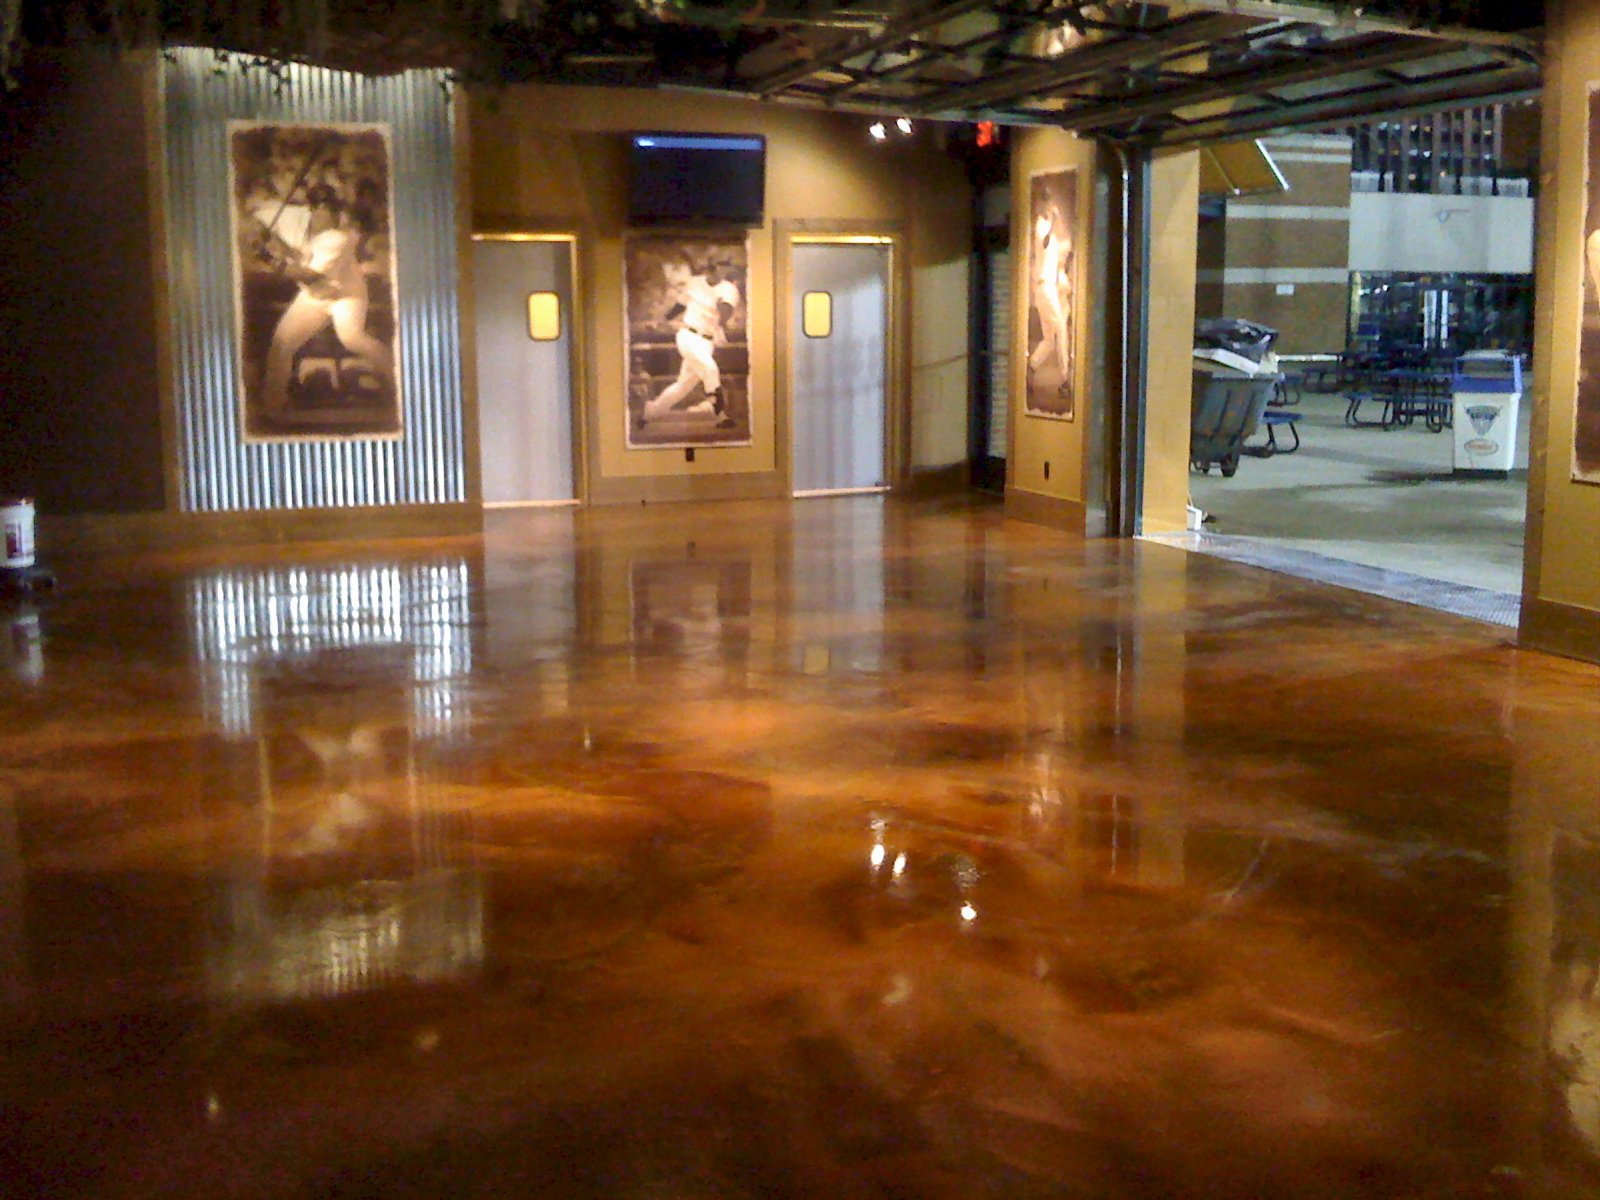 neutral epoxy concrete floor - Concrete Floor Design Ideas